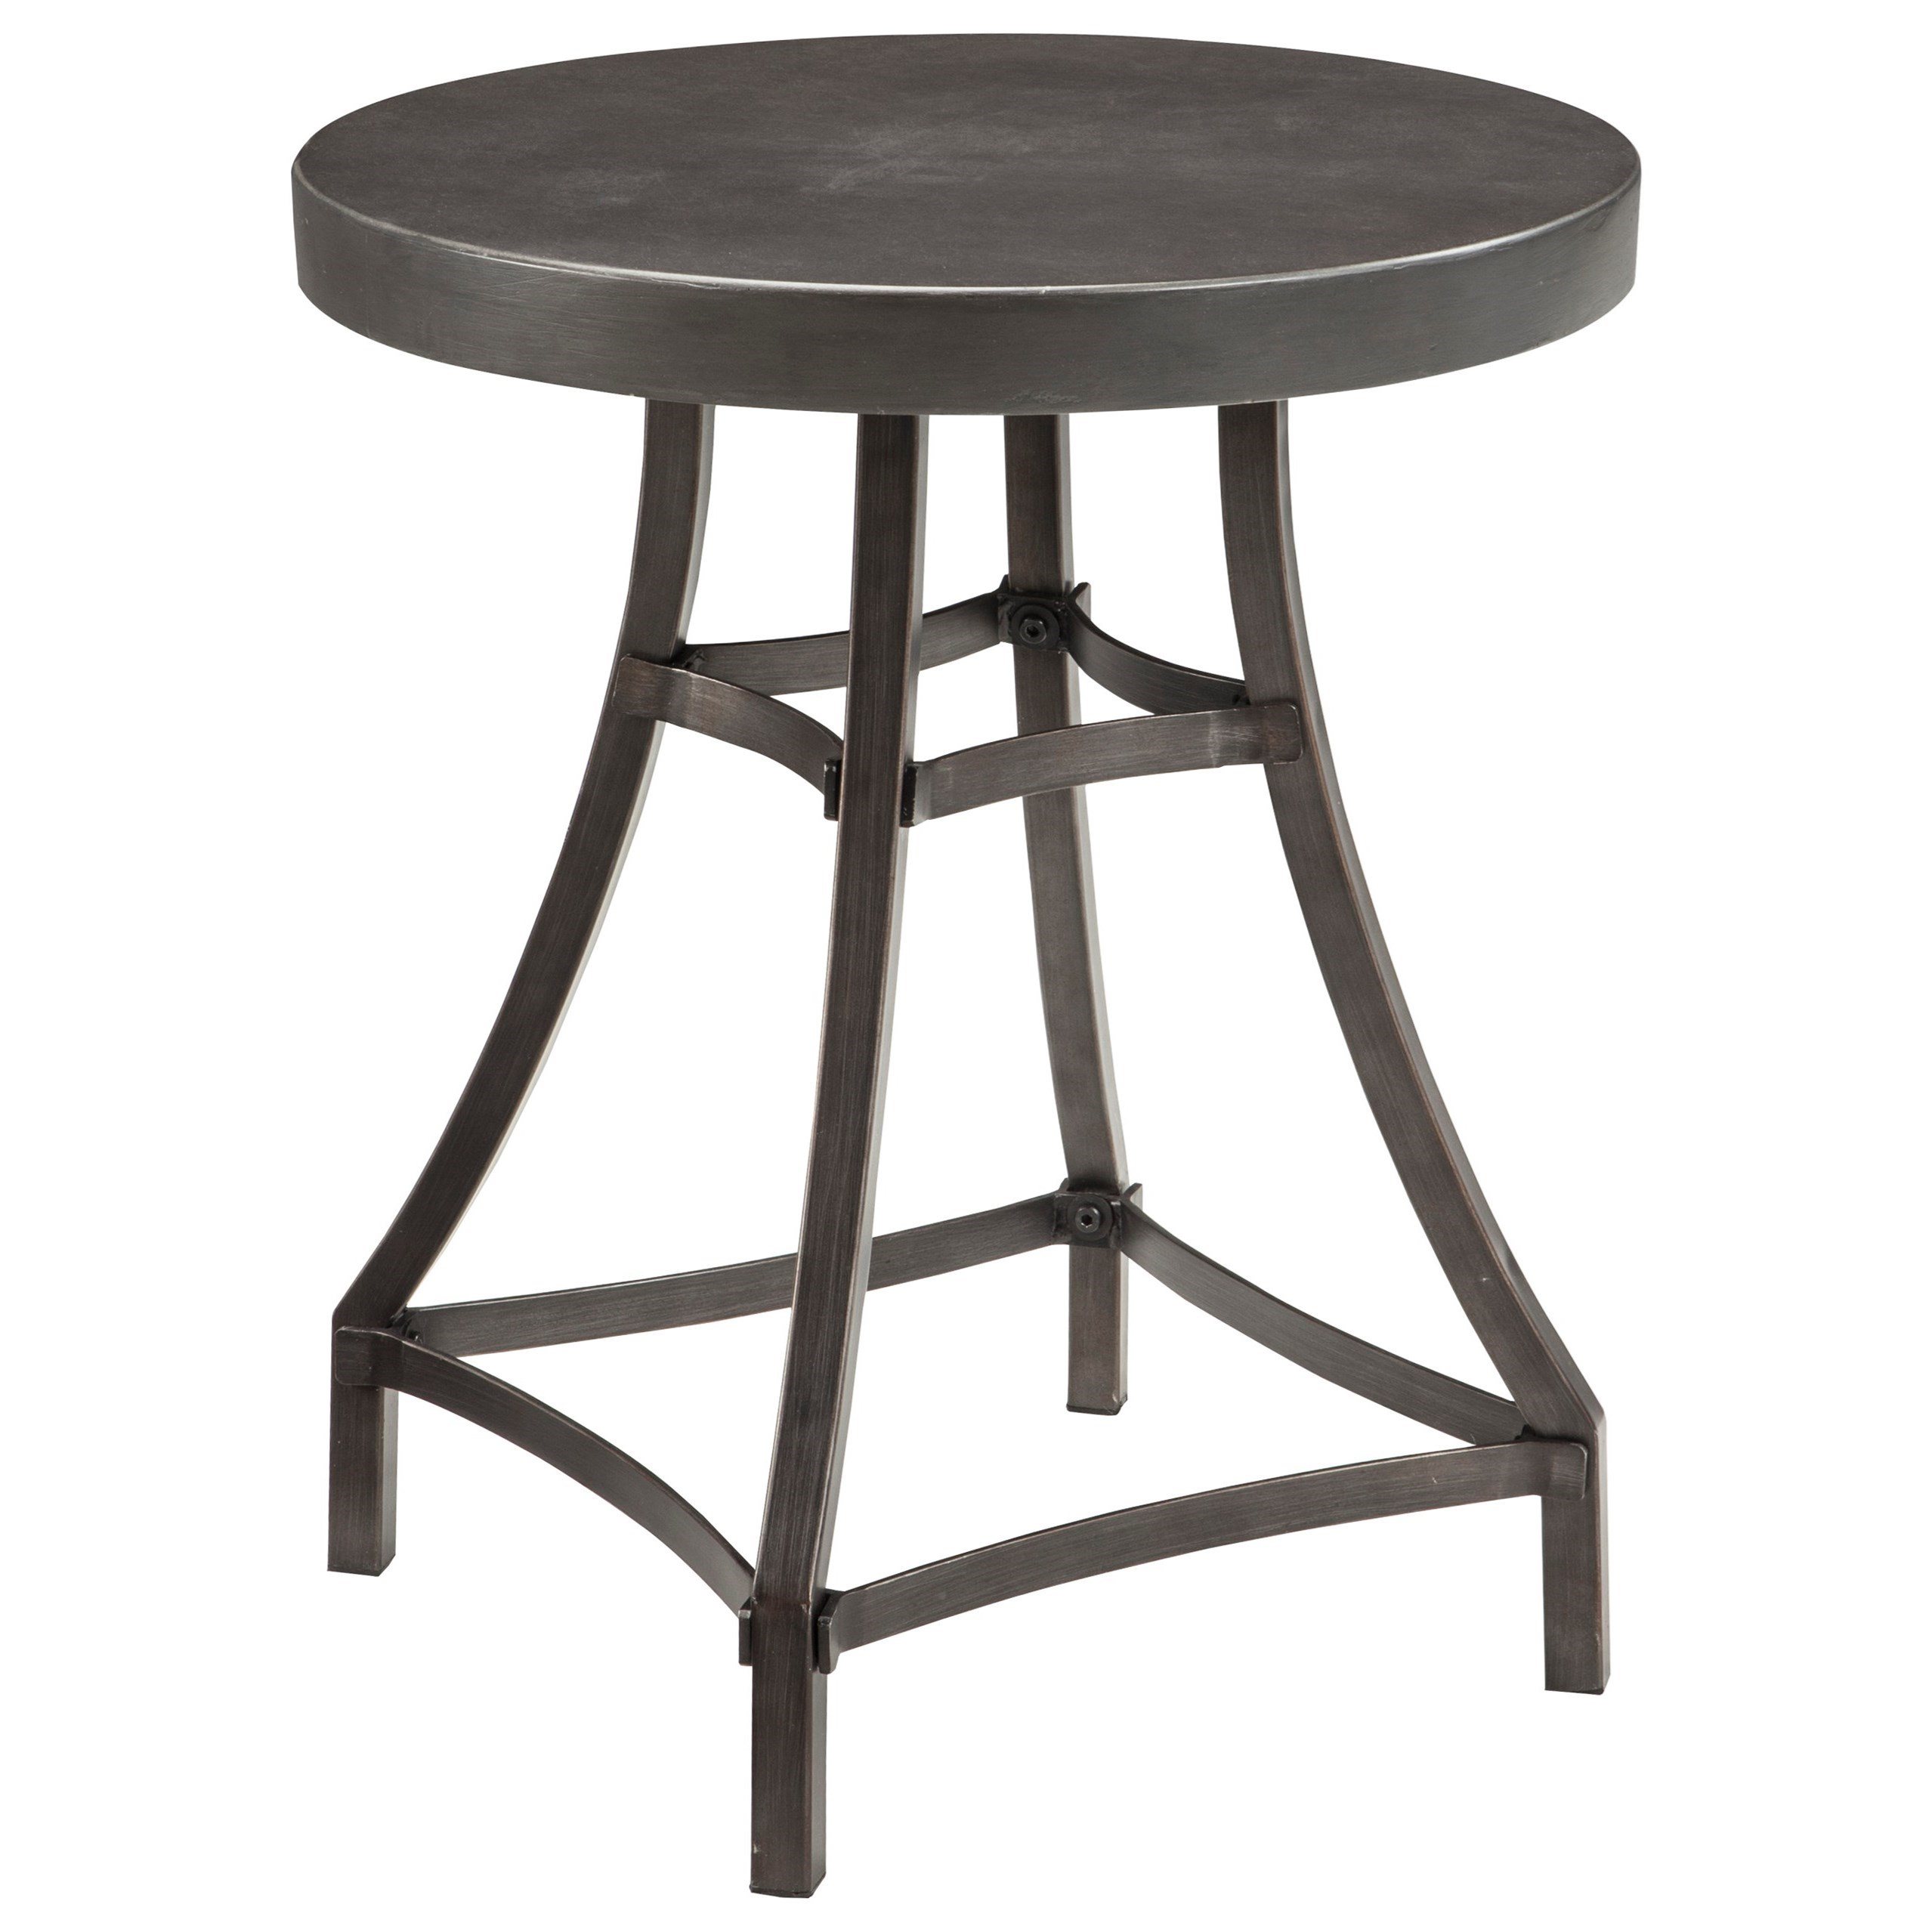 signature design ashley starmore round end table iron mirimyn accent tables tall glass coffee small side west elm console target furniture mirror circular front porch and chairs